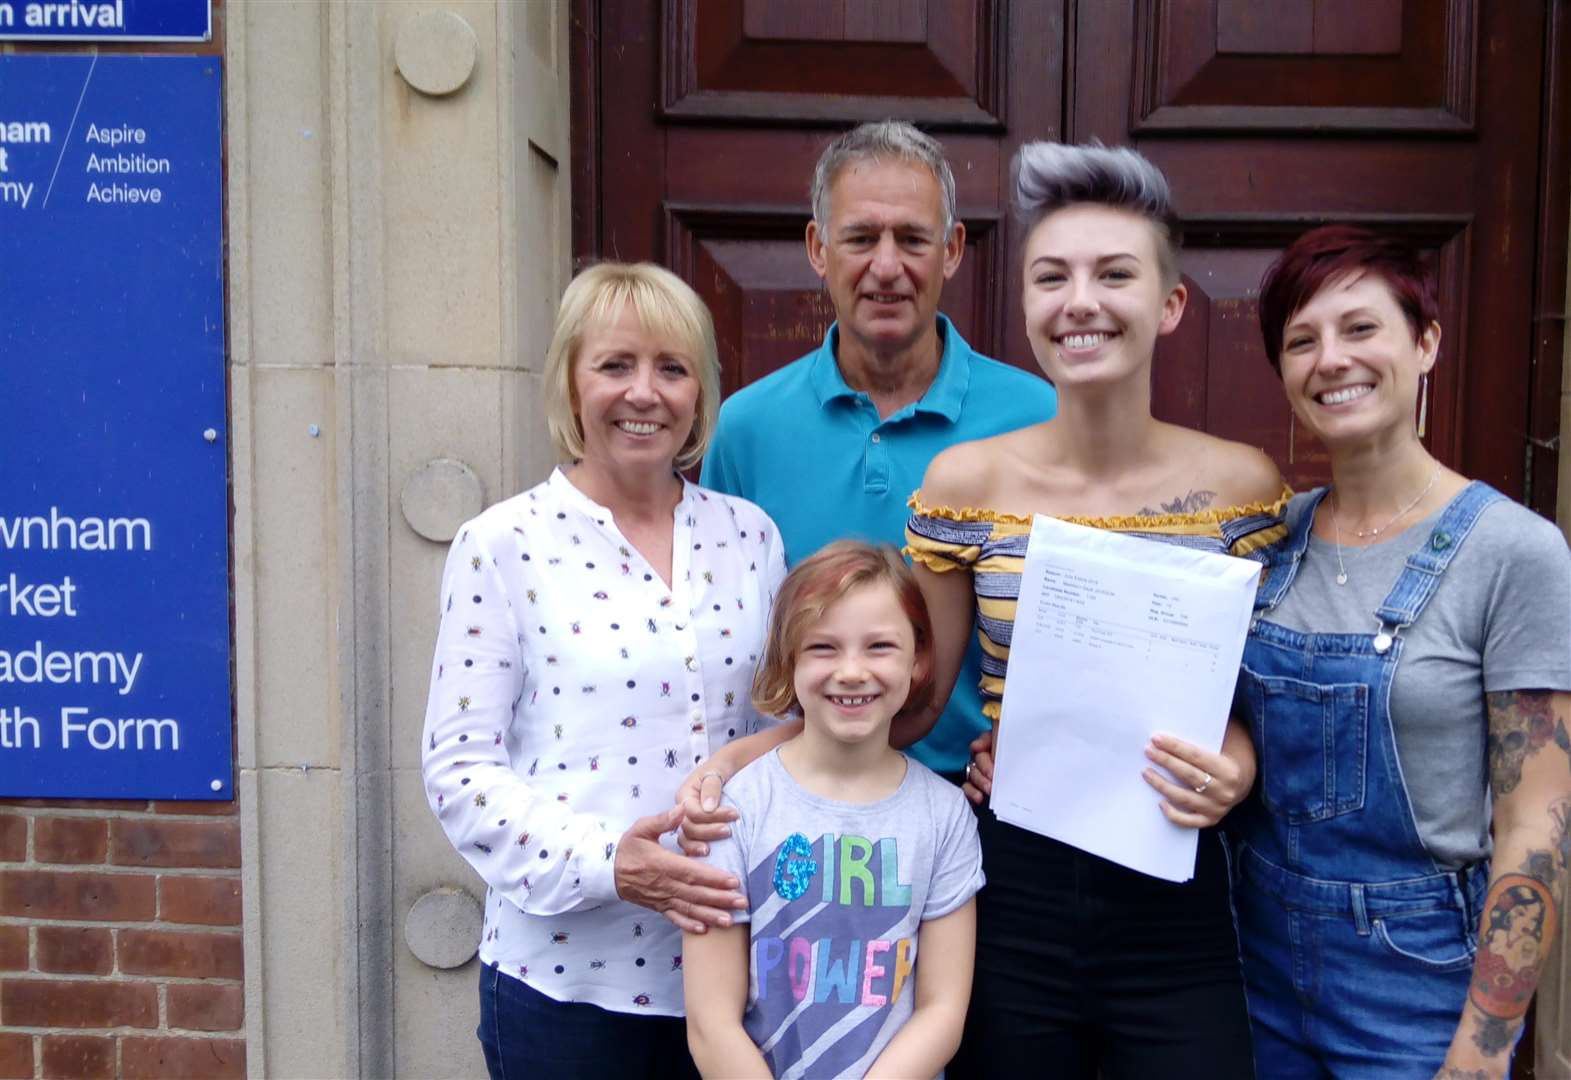 A-LEVELS 2018: Family joy as Downham student secures Cambridge place